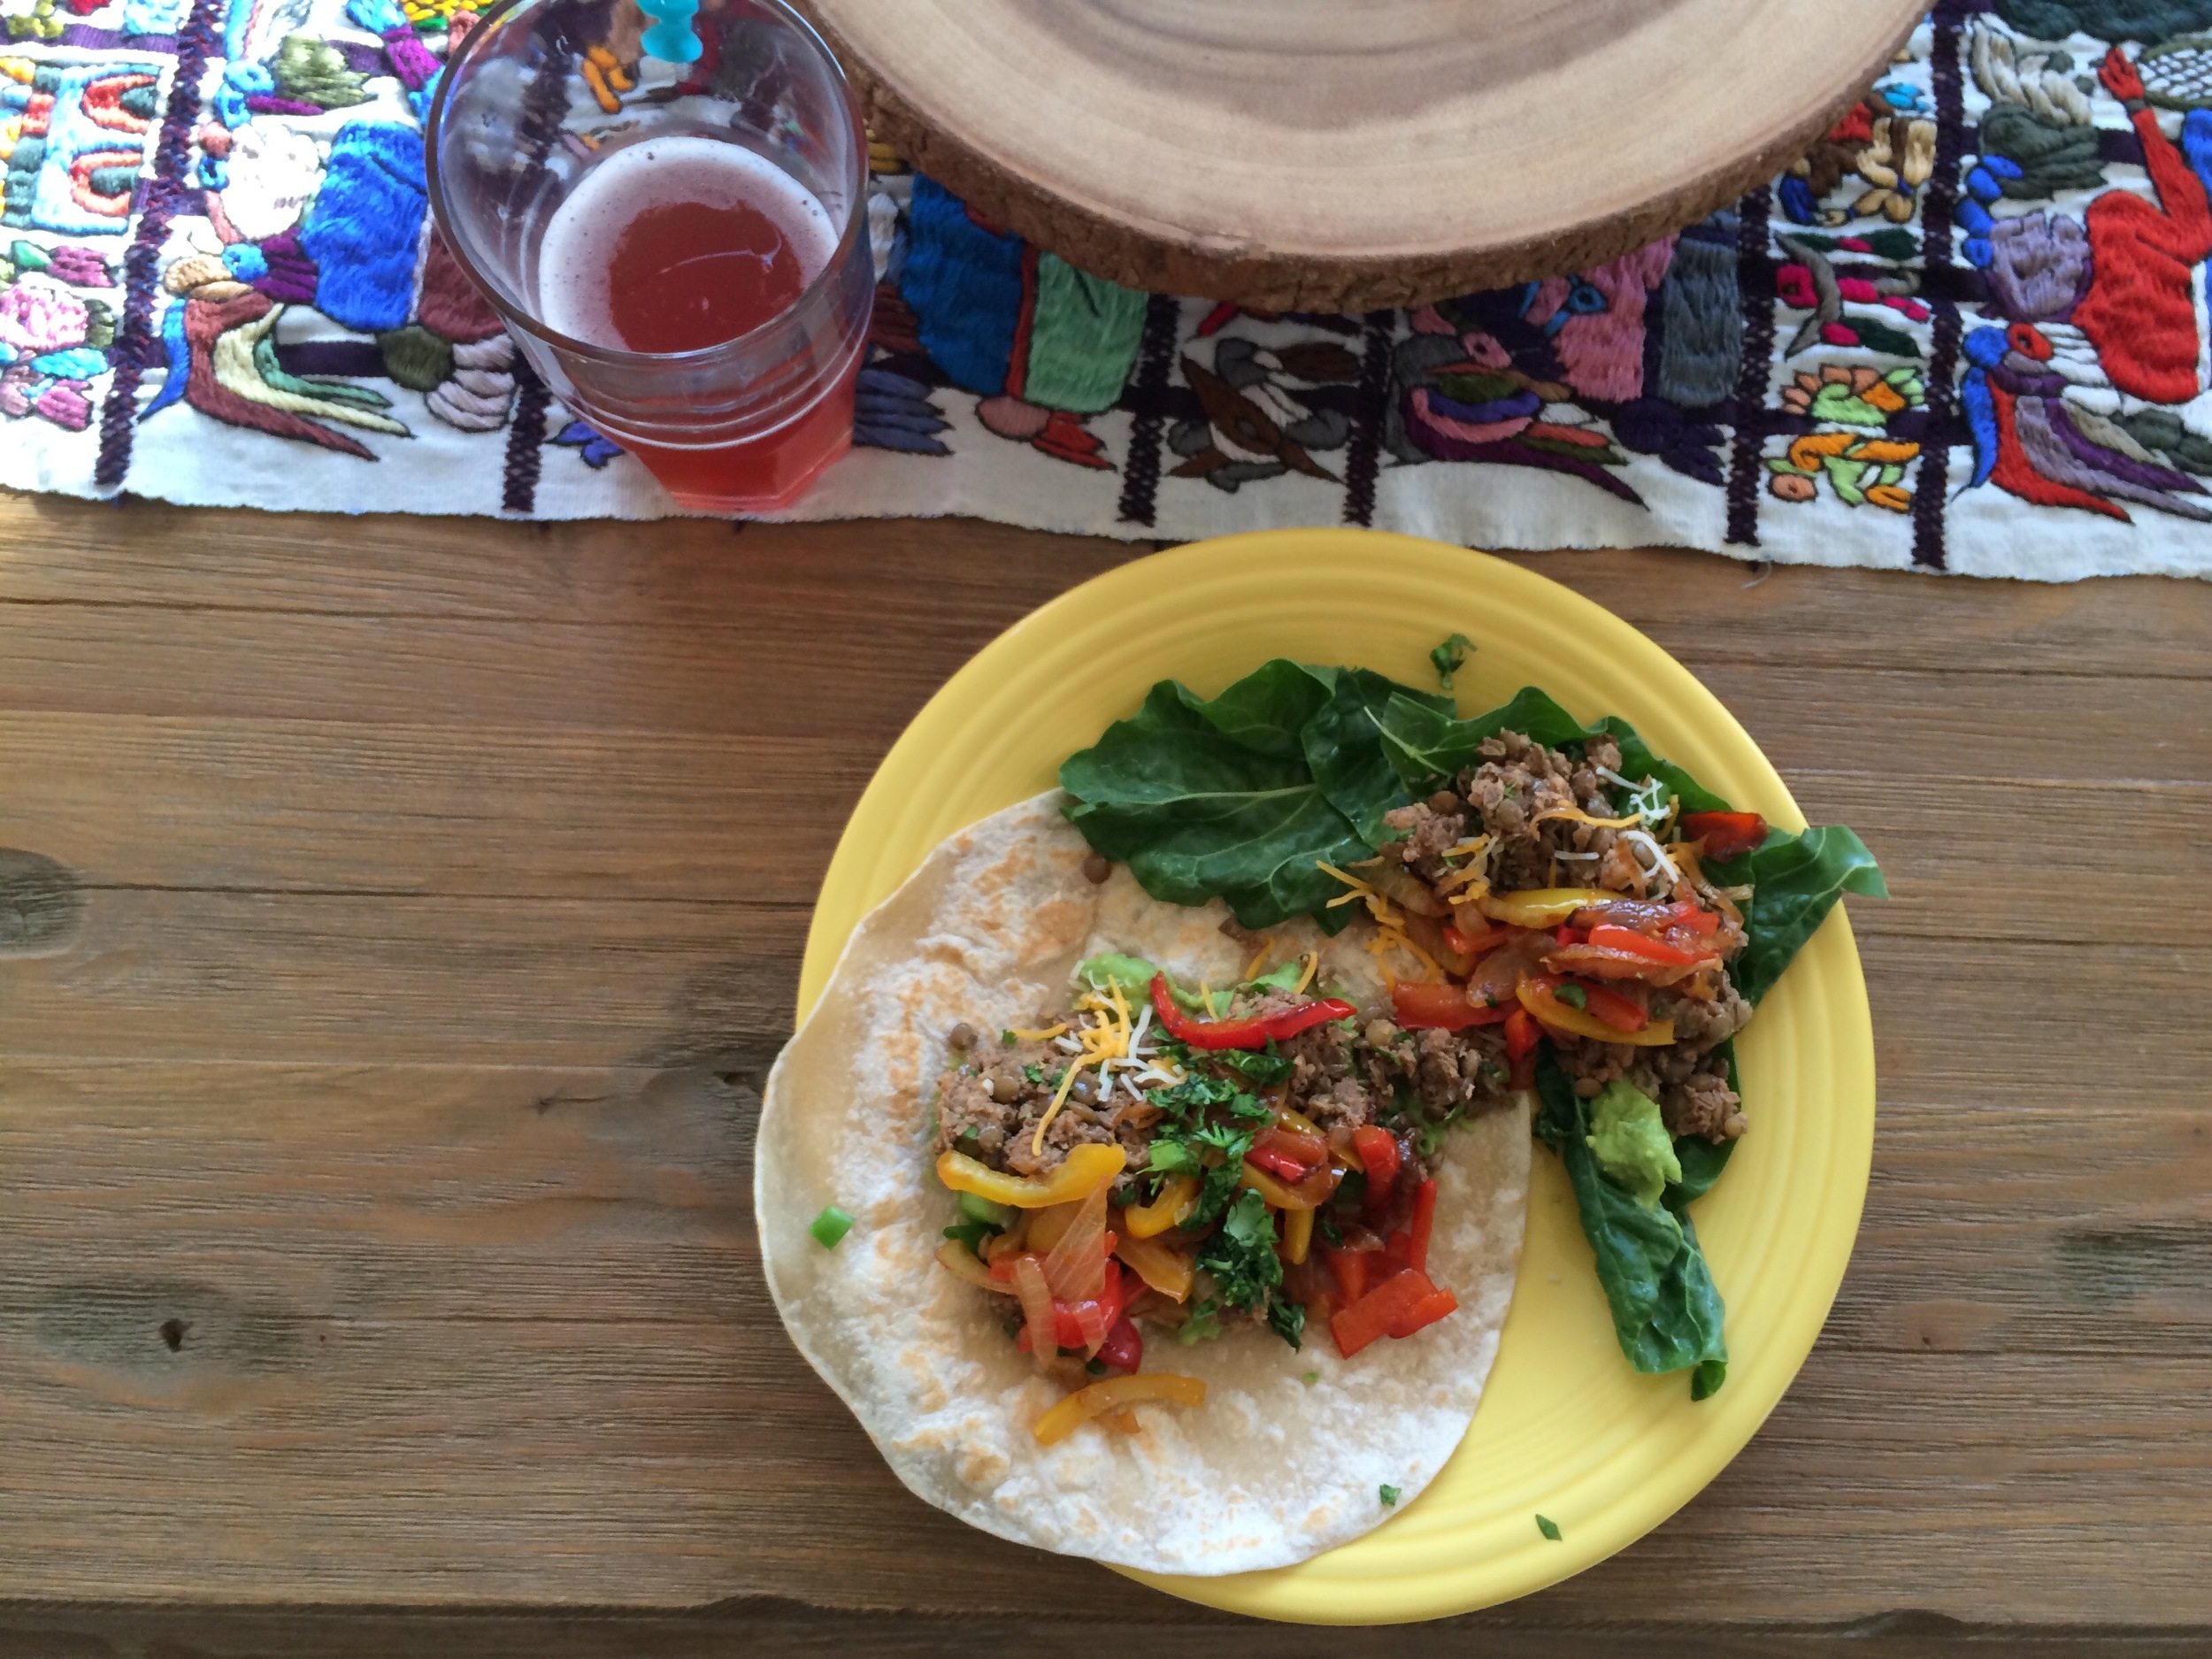 Ultimate walnut lentil 'meat' tacos from Oh, She Glows recipes. Also, homemade pomegranate kombucha made by our Seekers Ian and Martyn, yum.